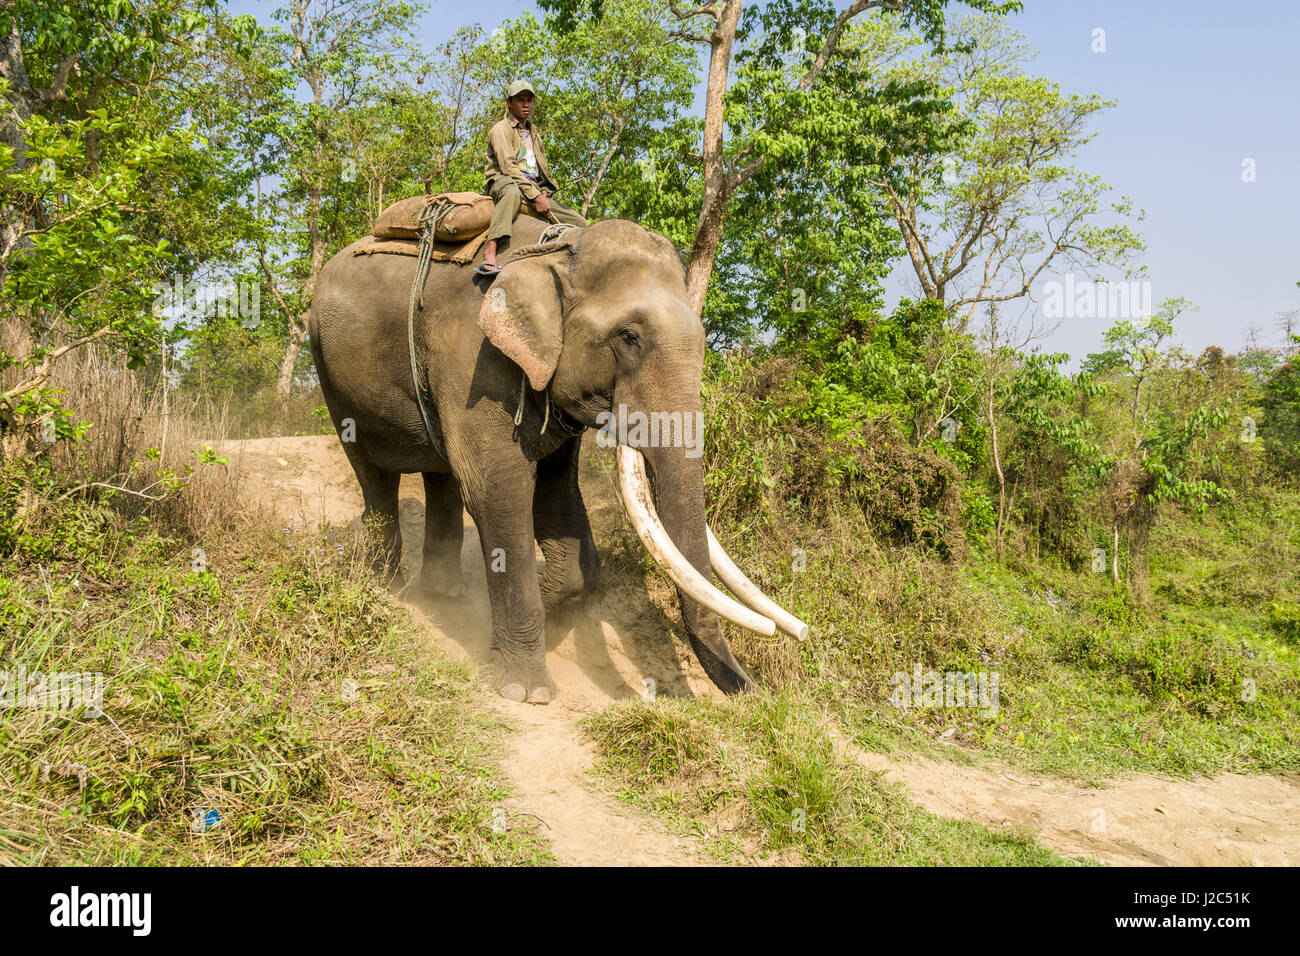 A male elephant (Elephas maximus indicus) with big molar teeth is carrying his mahout in Chitwan National Park - Stock Image